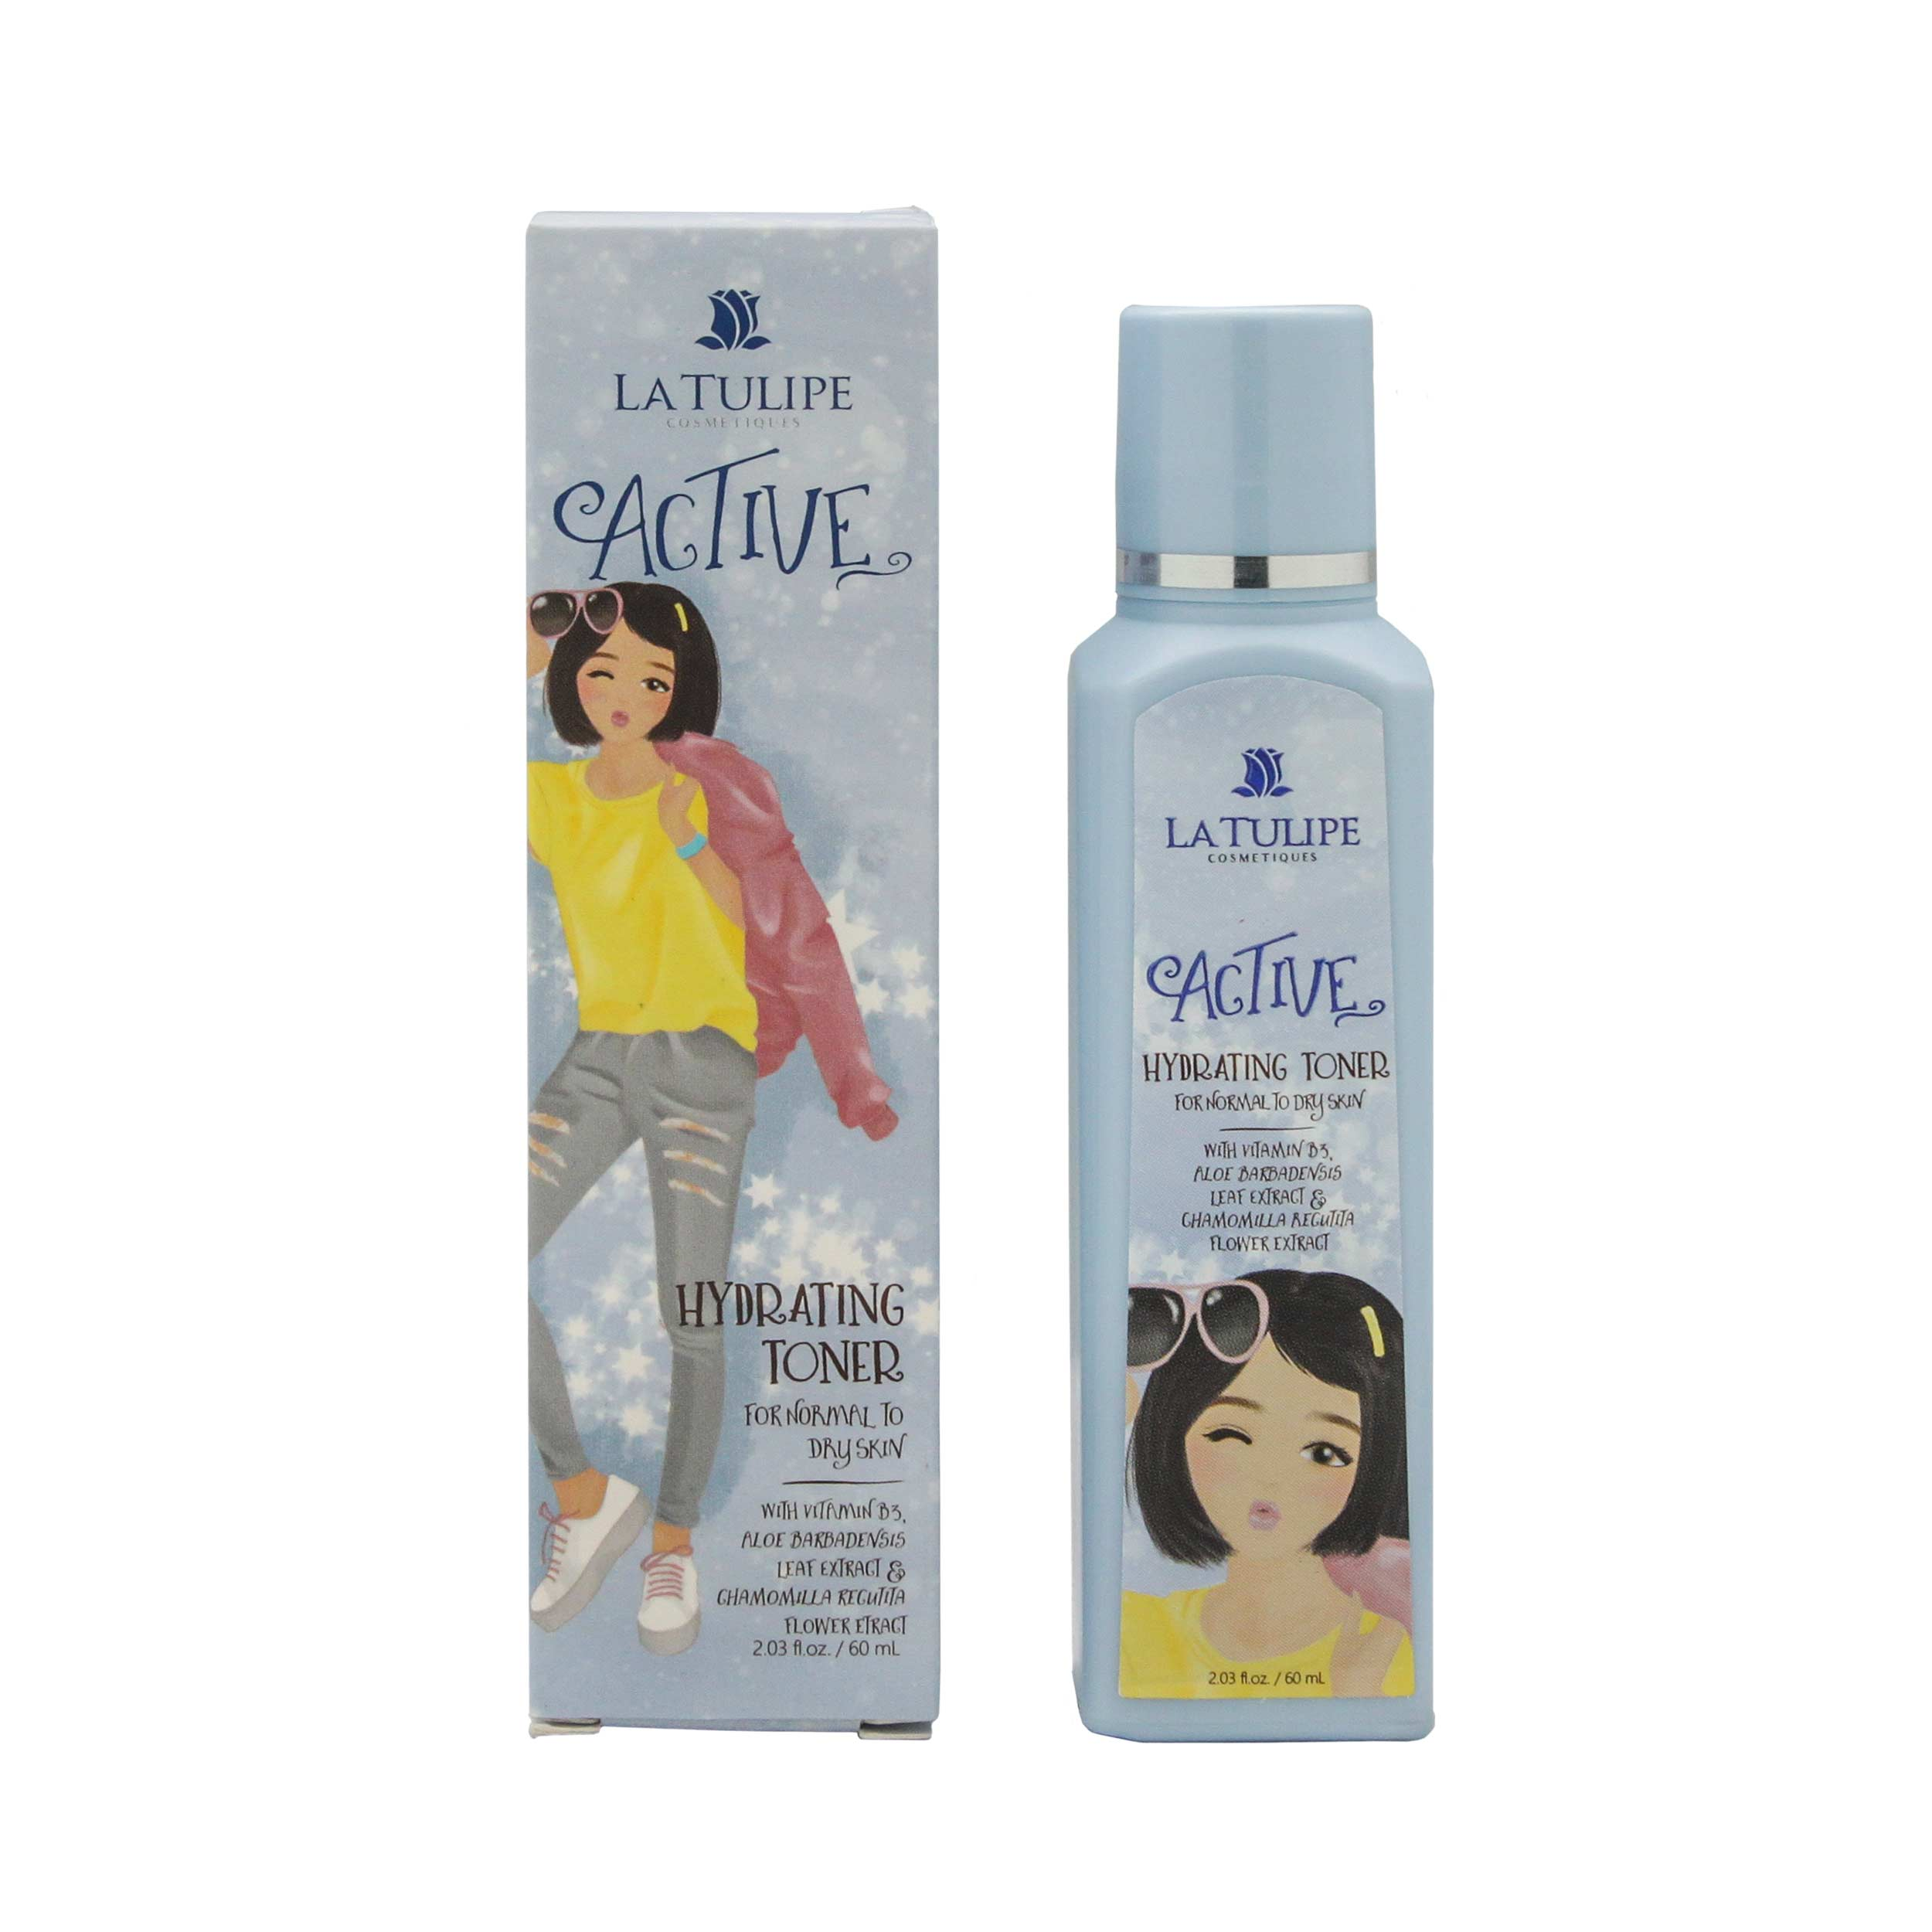 La-Tulipe-Active-Hydrating-Toner-for-Normal-to-Dry-Skin-sfw